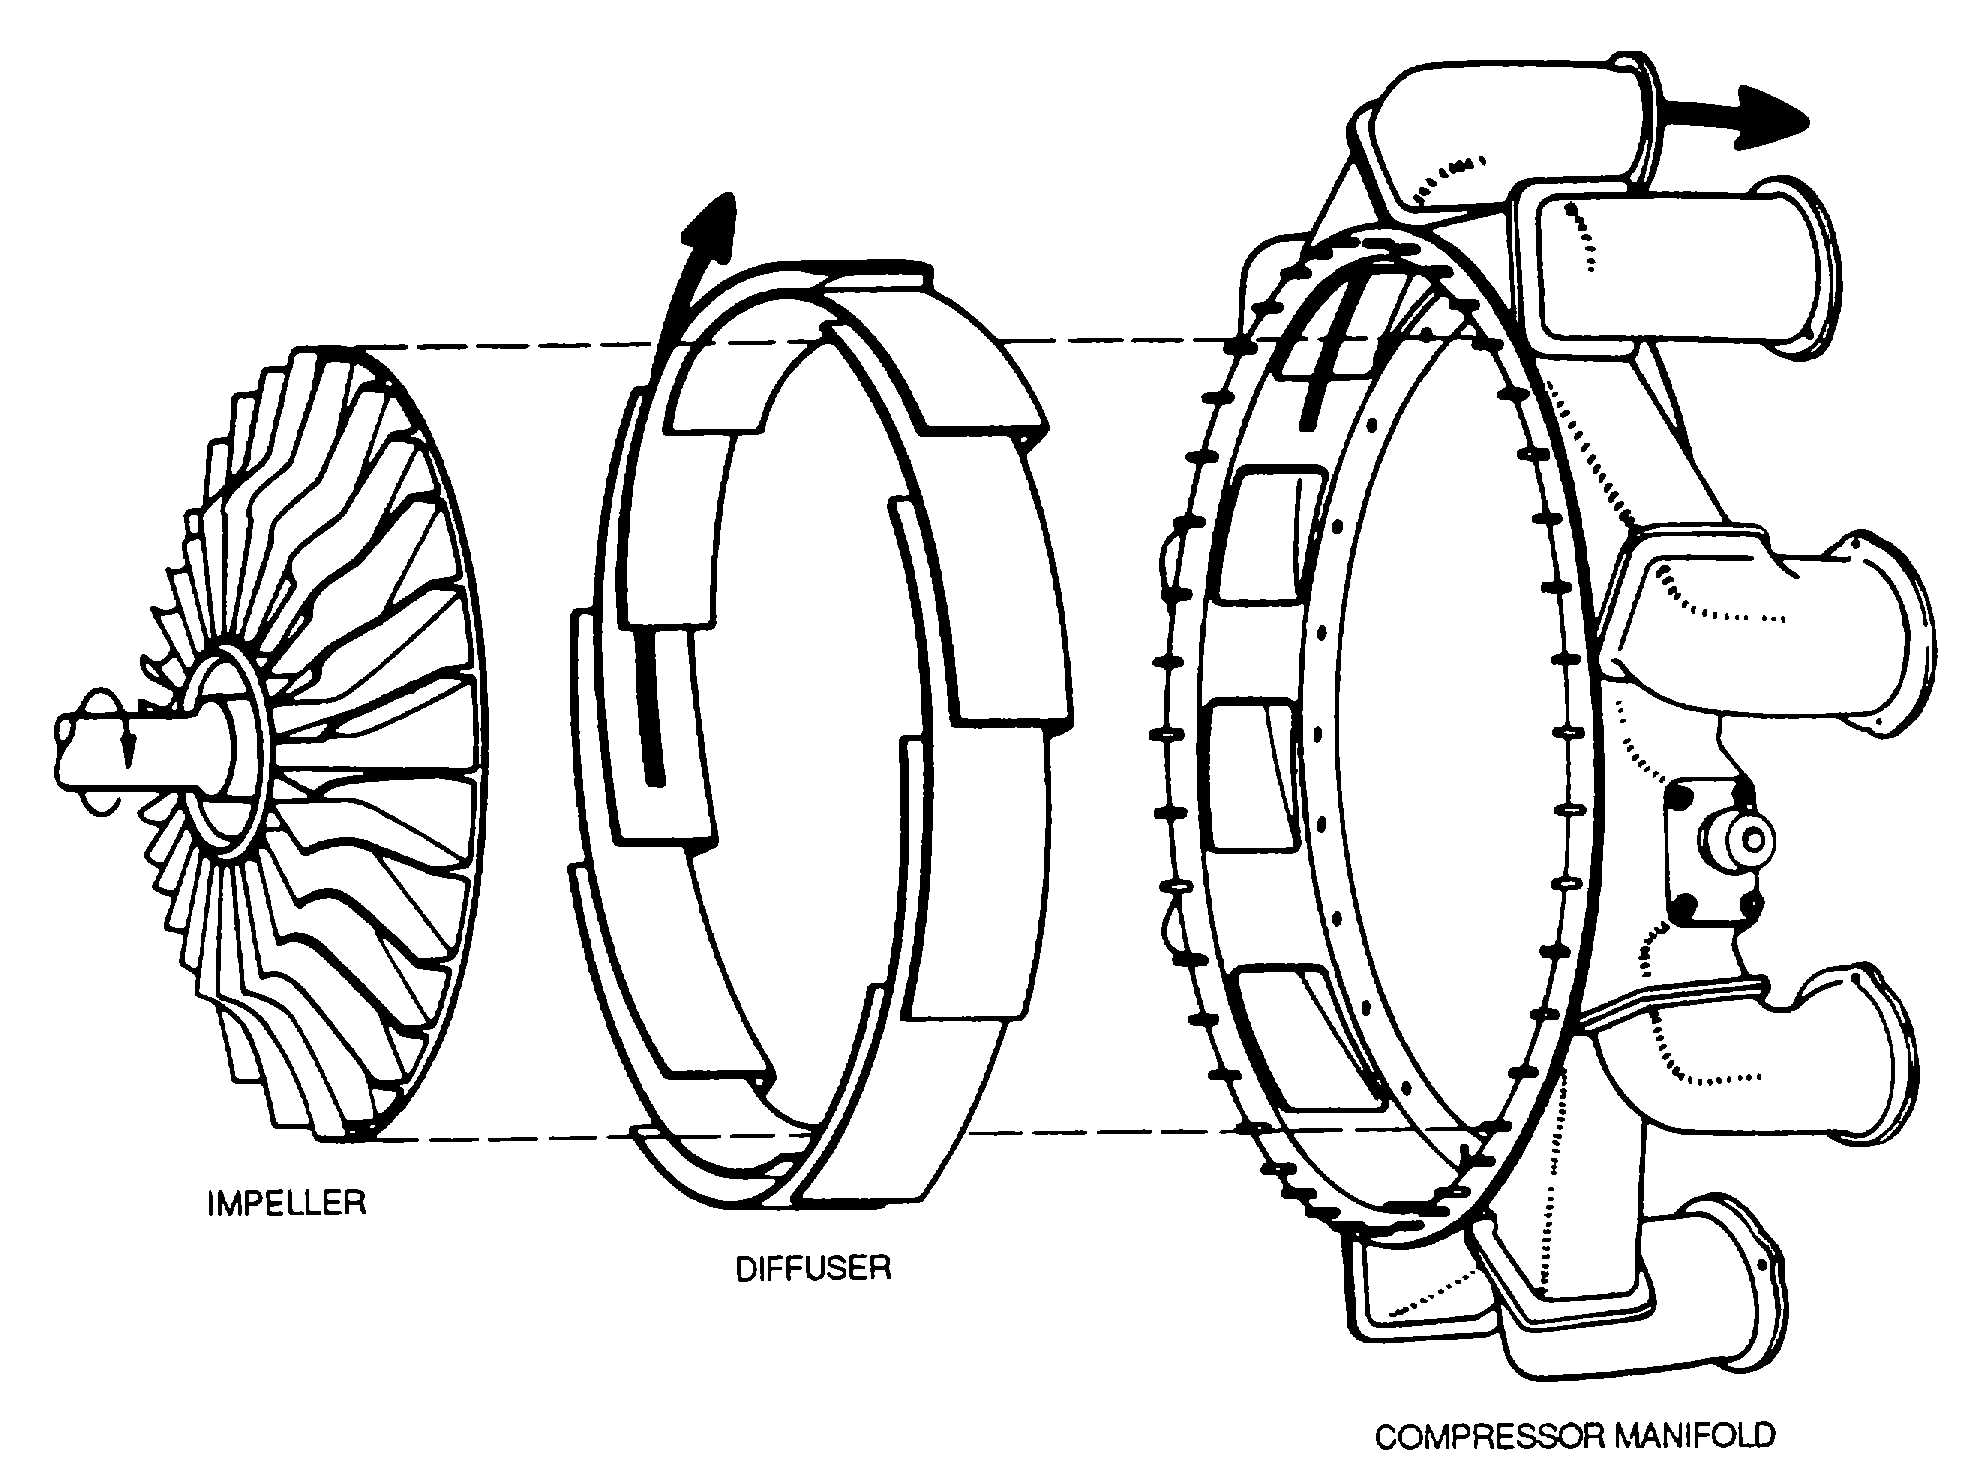 design and modeling of axial micro gas turbine engineering essay The microscale organic rankine cycle (orc) system is considered a promising technology to recover thermal energy from widely distributed low-temperature heat sources by using hfc-r225fa as working fluid, a 5-kw low-temperature orc system with a hermetic axial-flow turbo generator was designed, and.